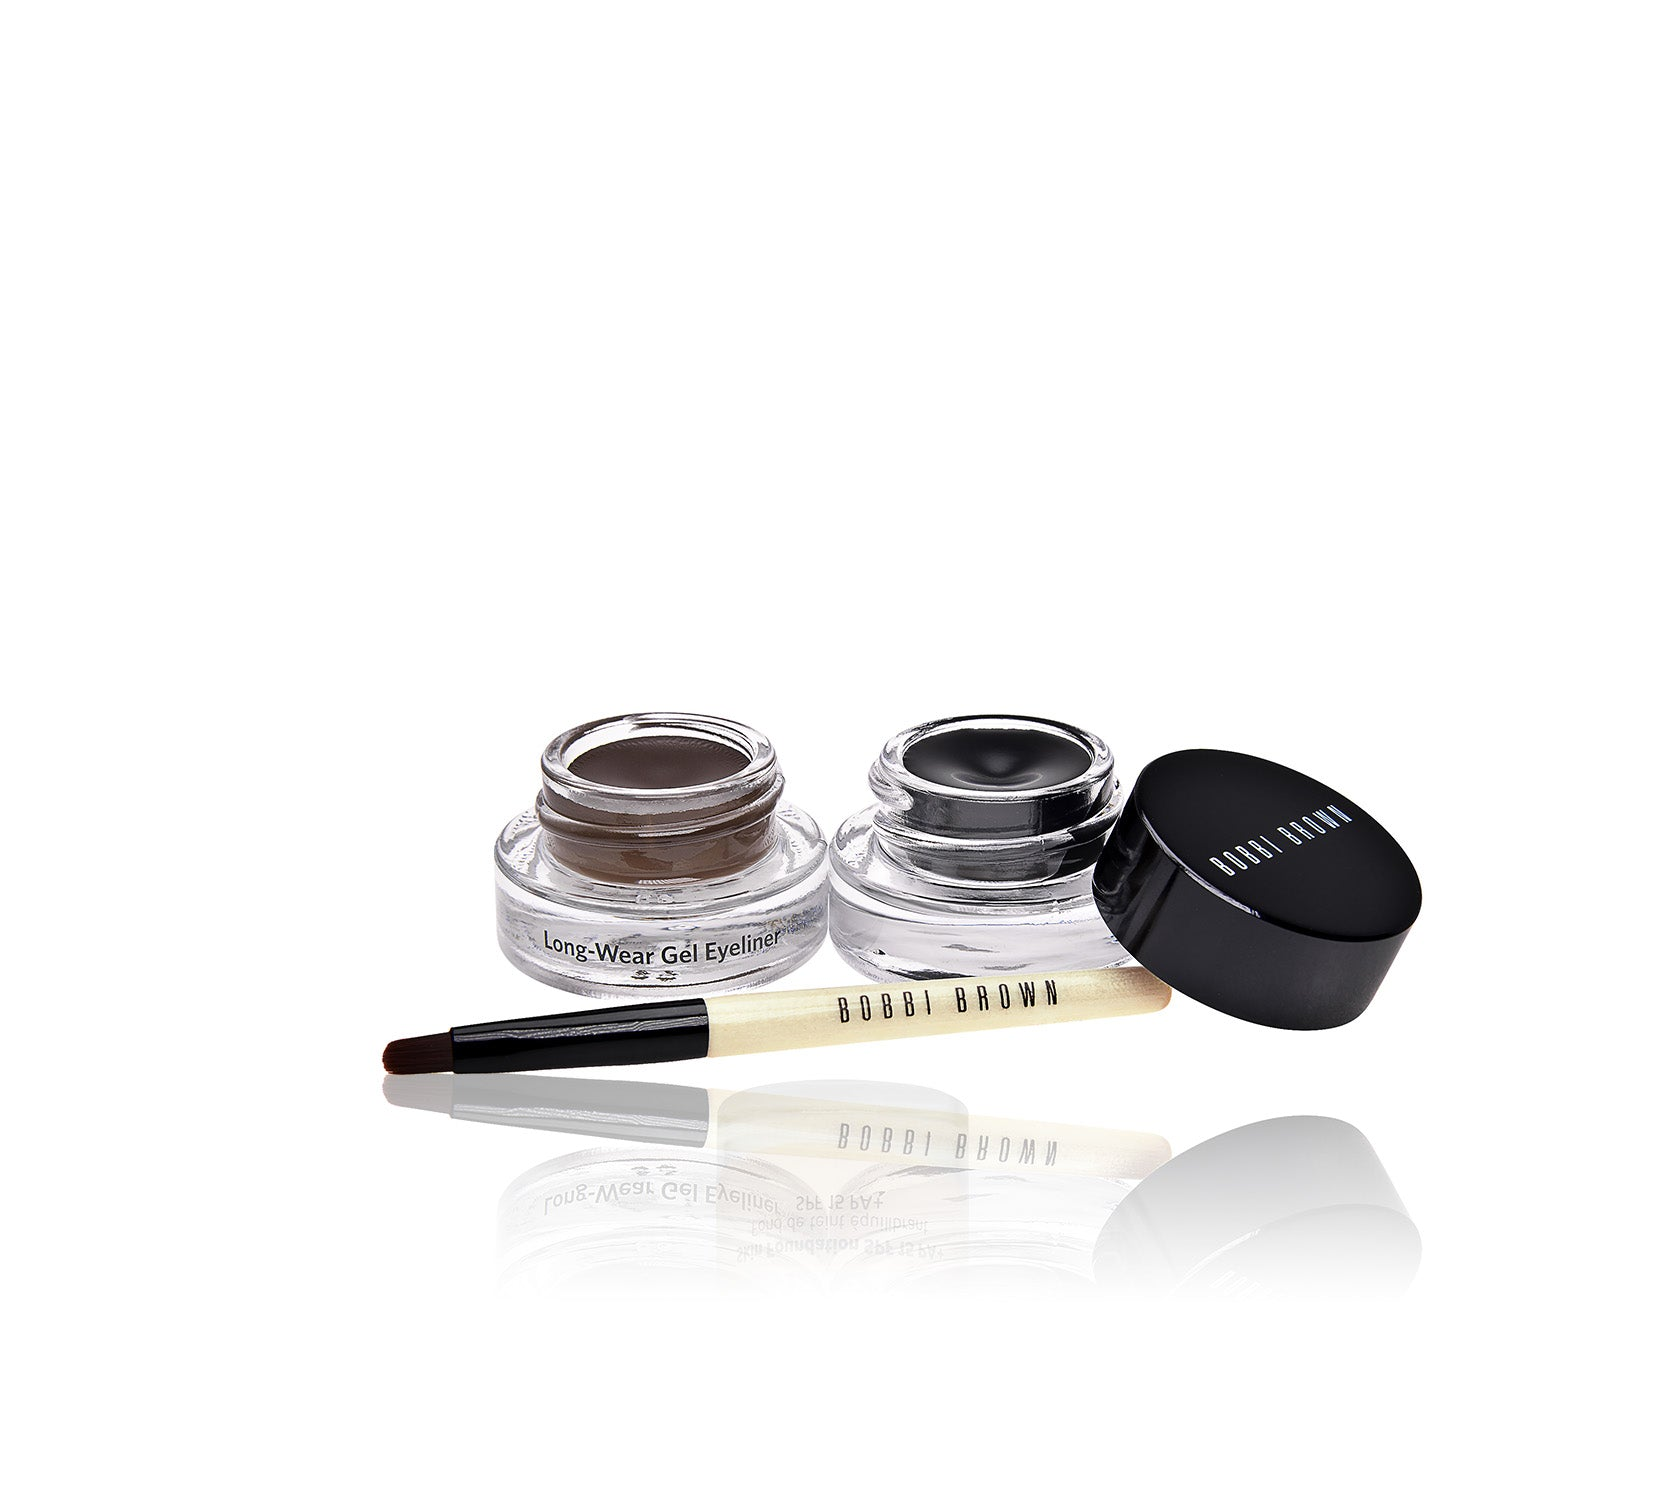 Long-Wear Gel Eyeliner Set